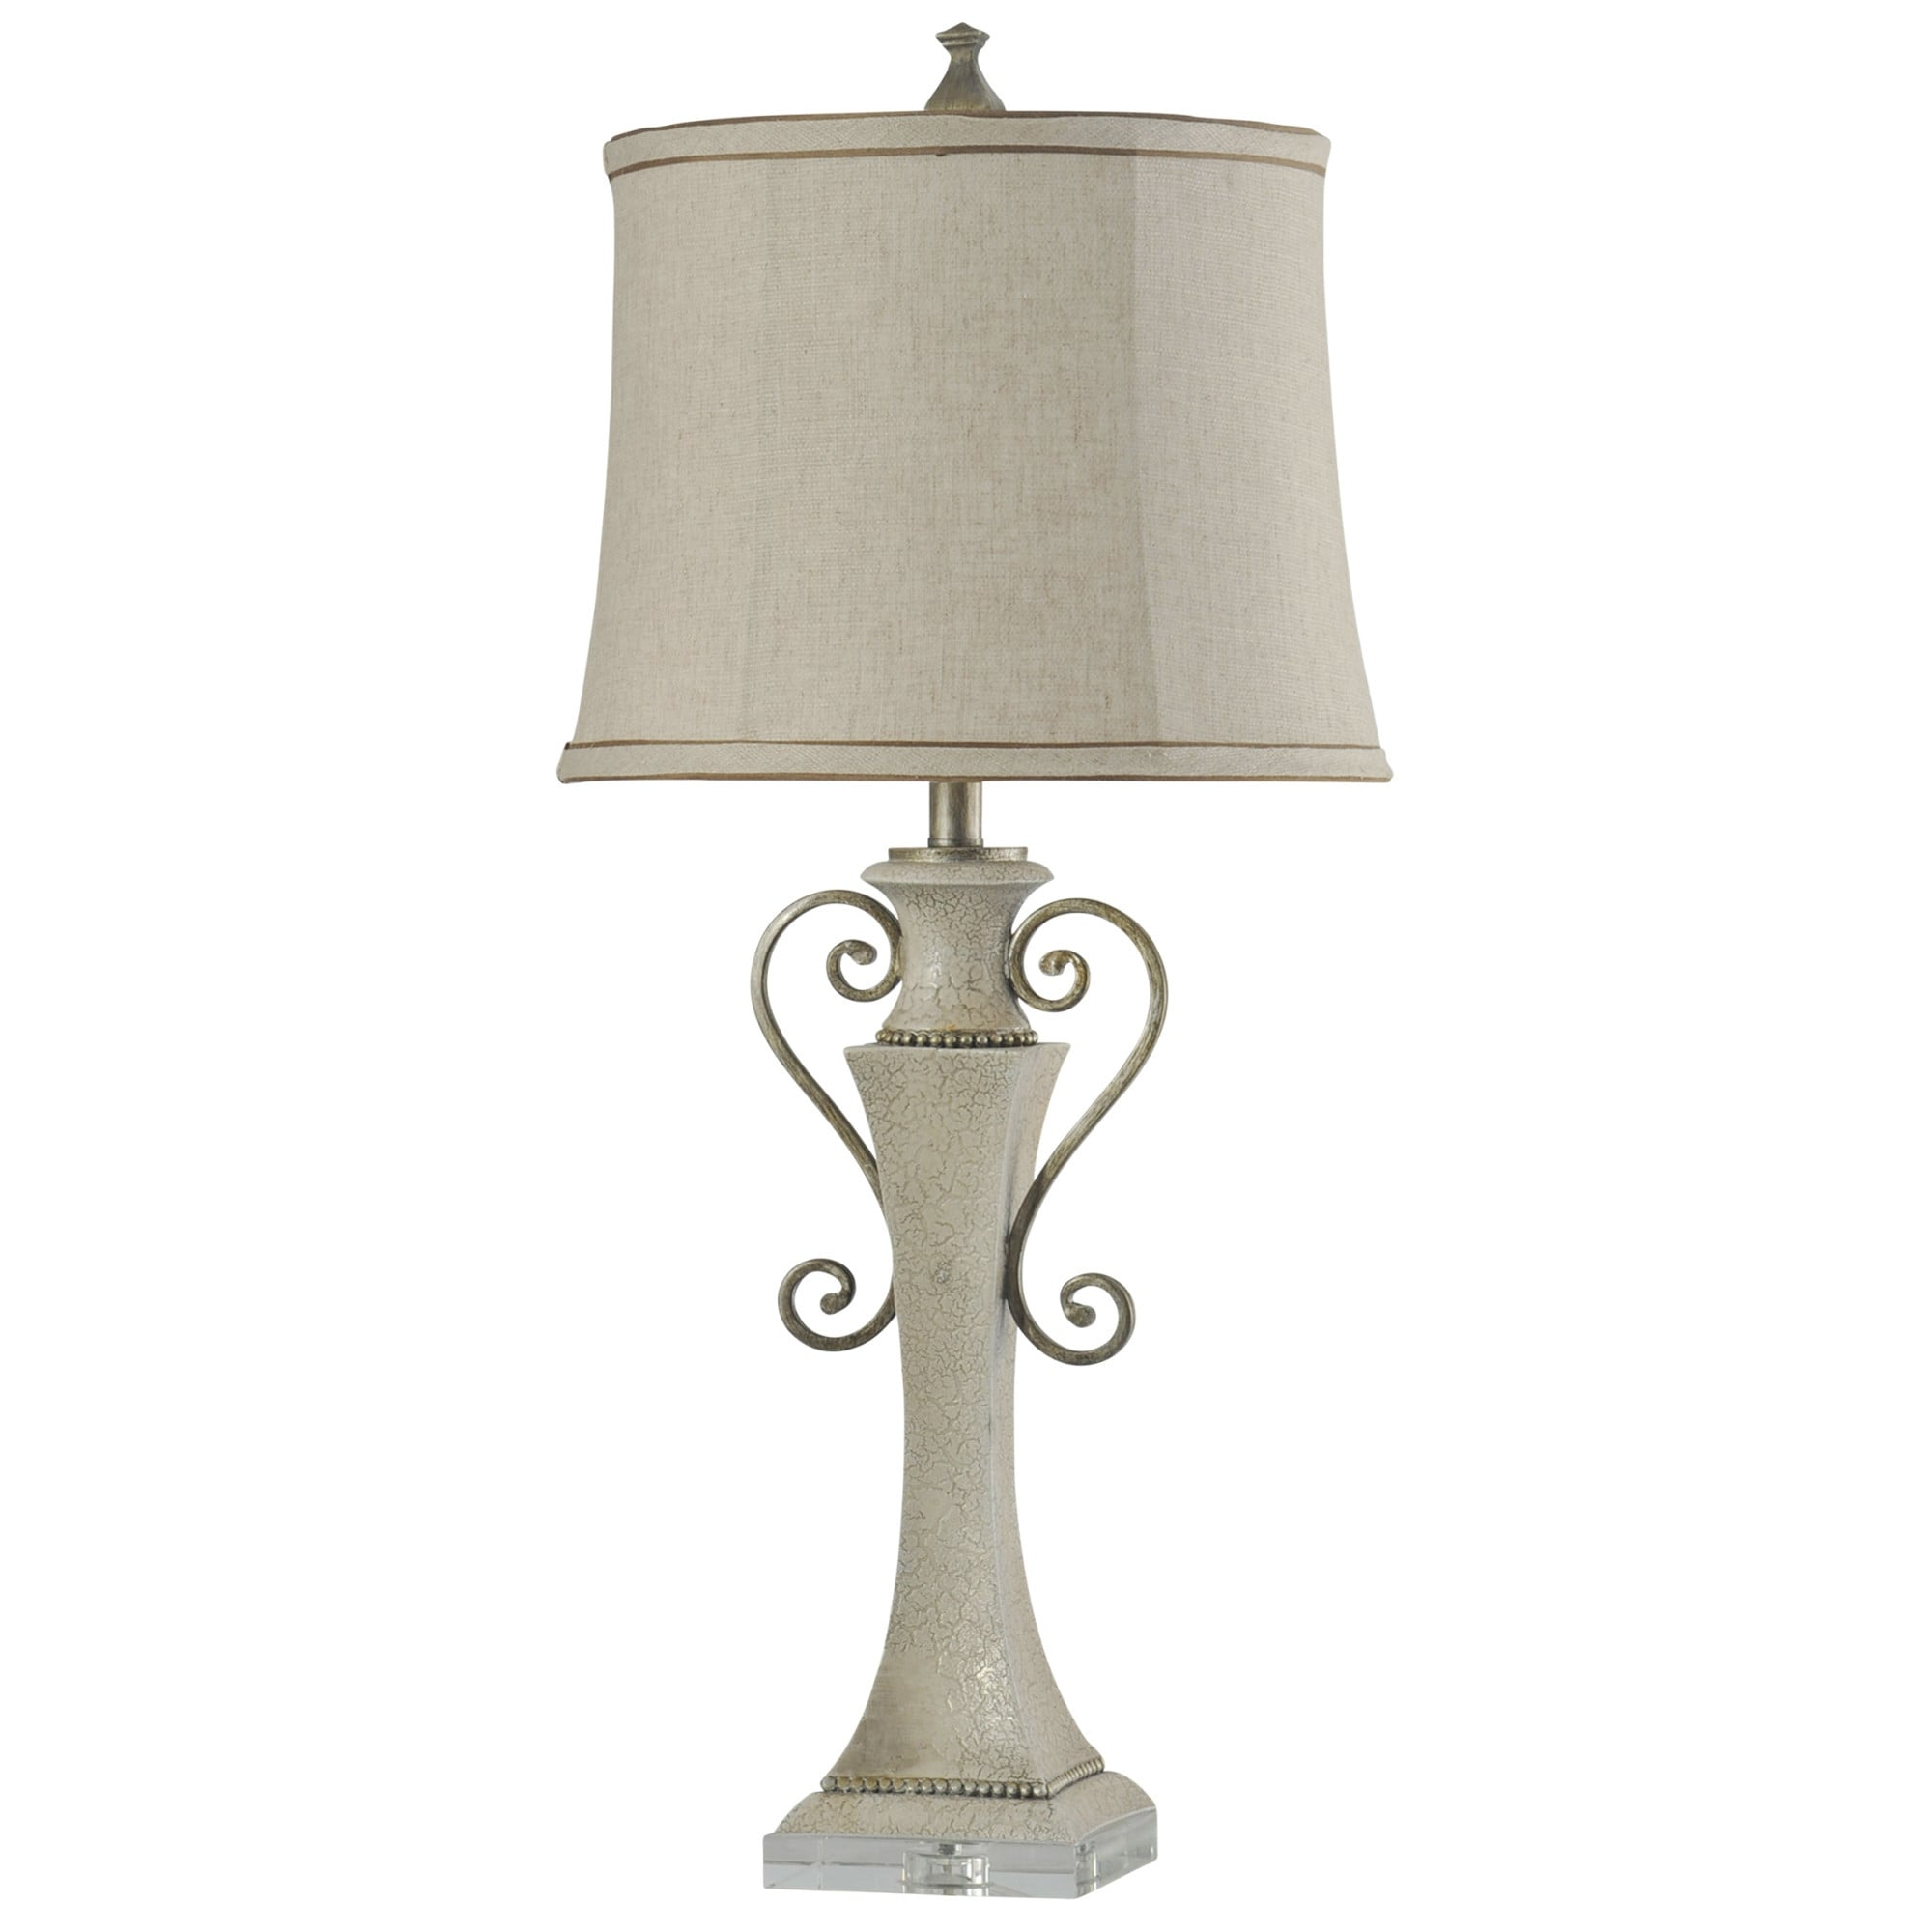 Delacora Sc L313610 Neihart 34 Tall Buffet Table Lamp With Softback Fabric Shade Crackled White Cream Overstock 25653136